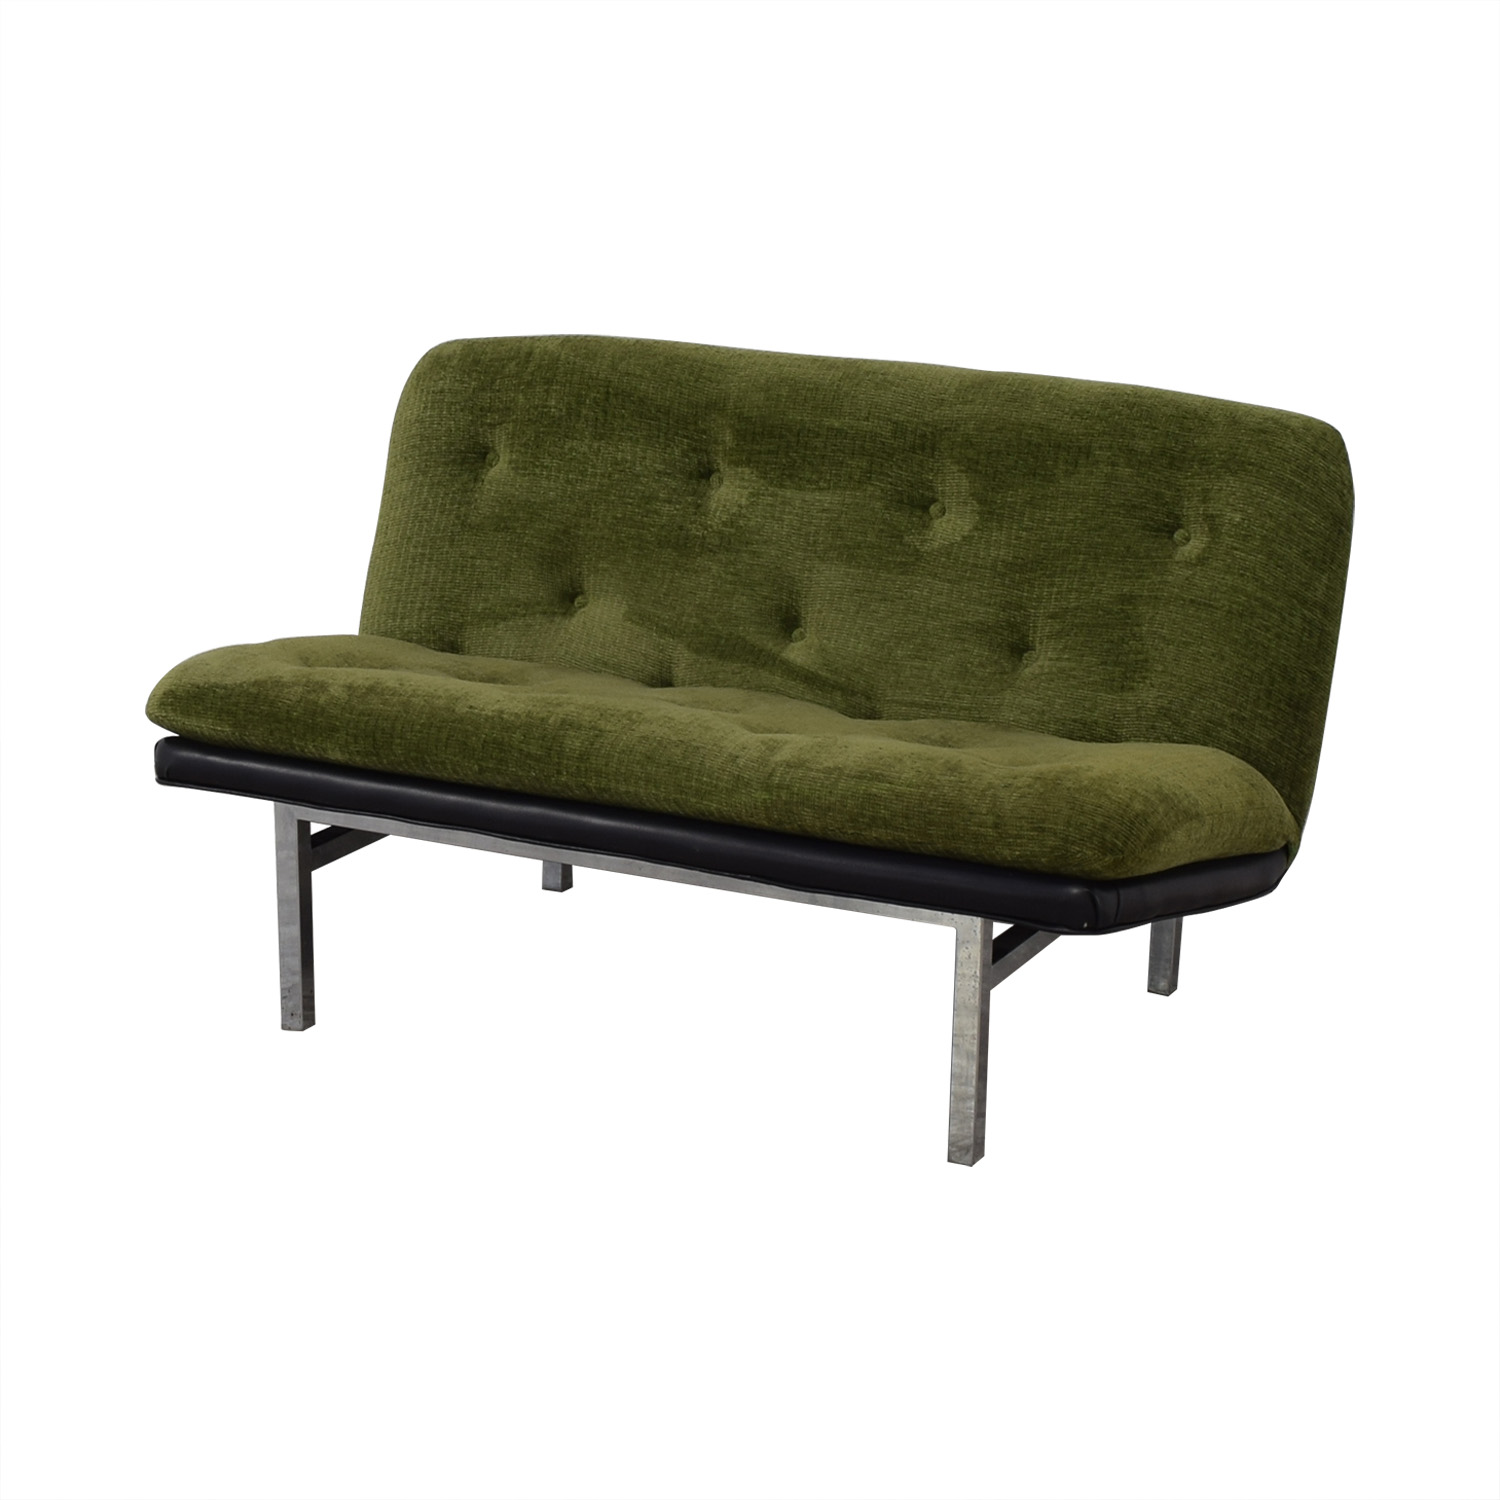 buy Tufted Modernist Loveseat